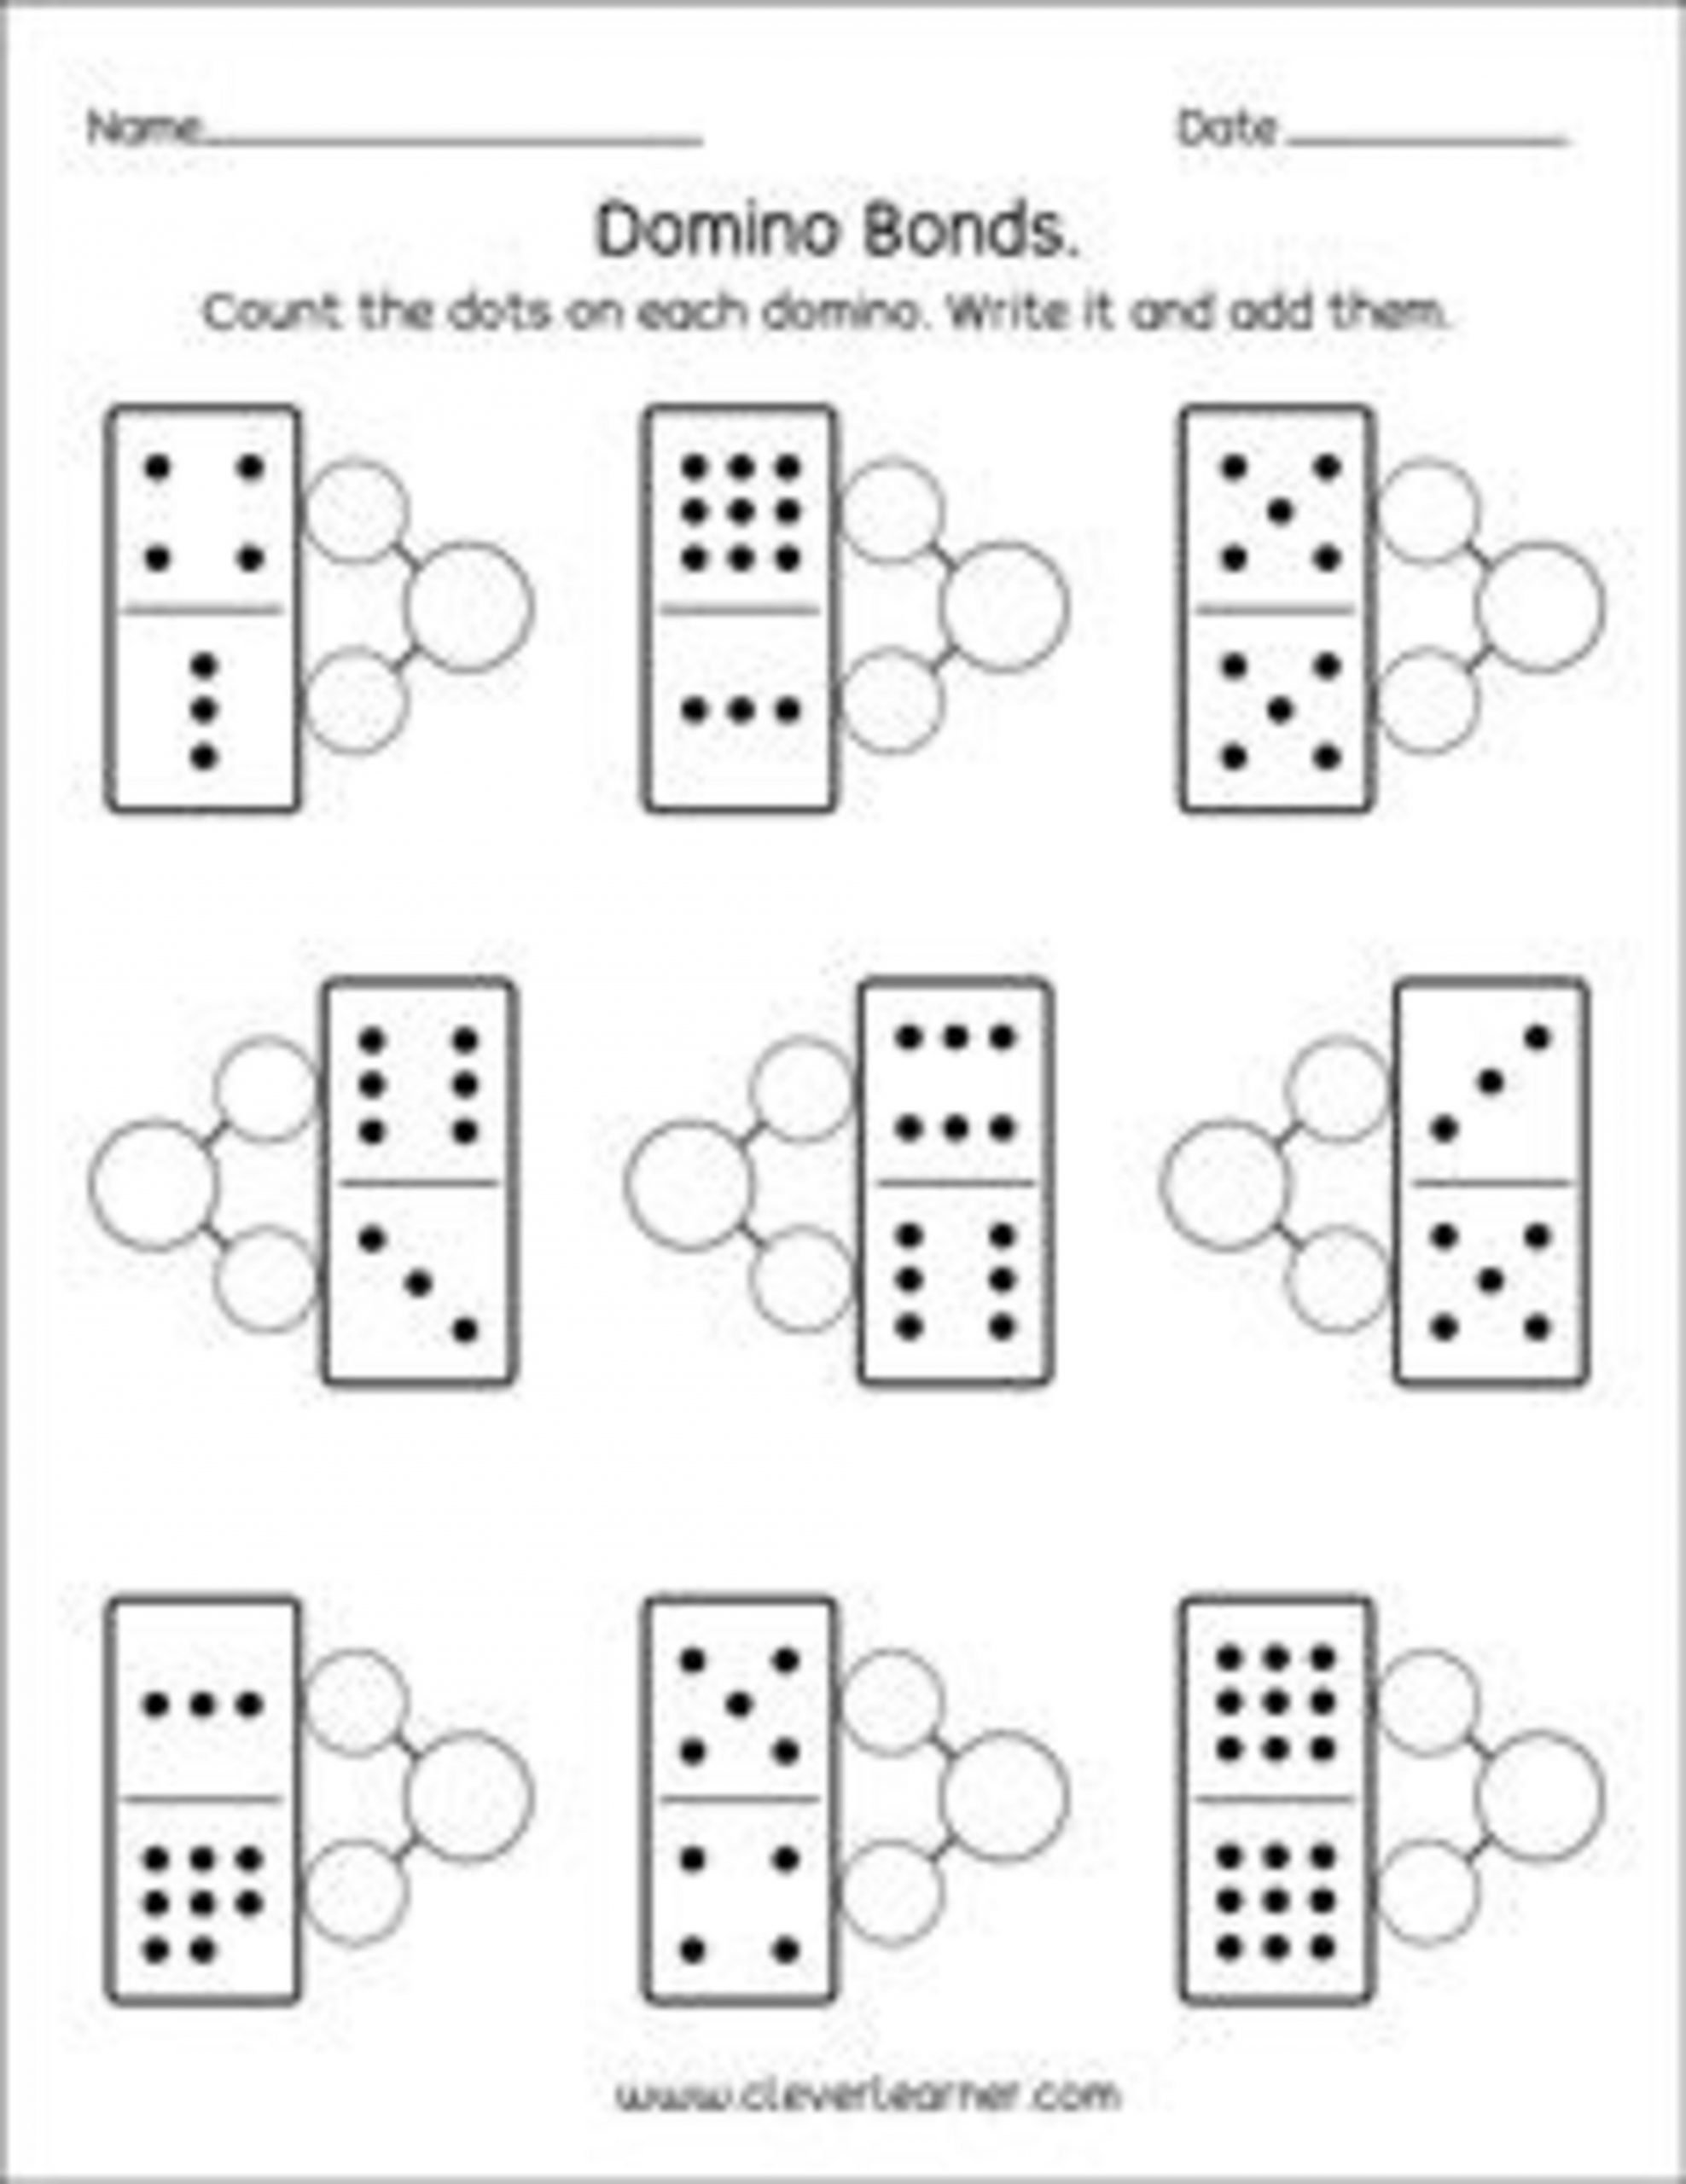 Number Bond Worksheets 2nd Grade Number Bonds Worksheets for Printable Number Bonds